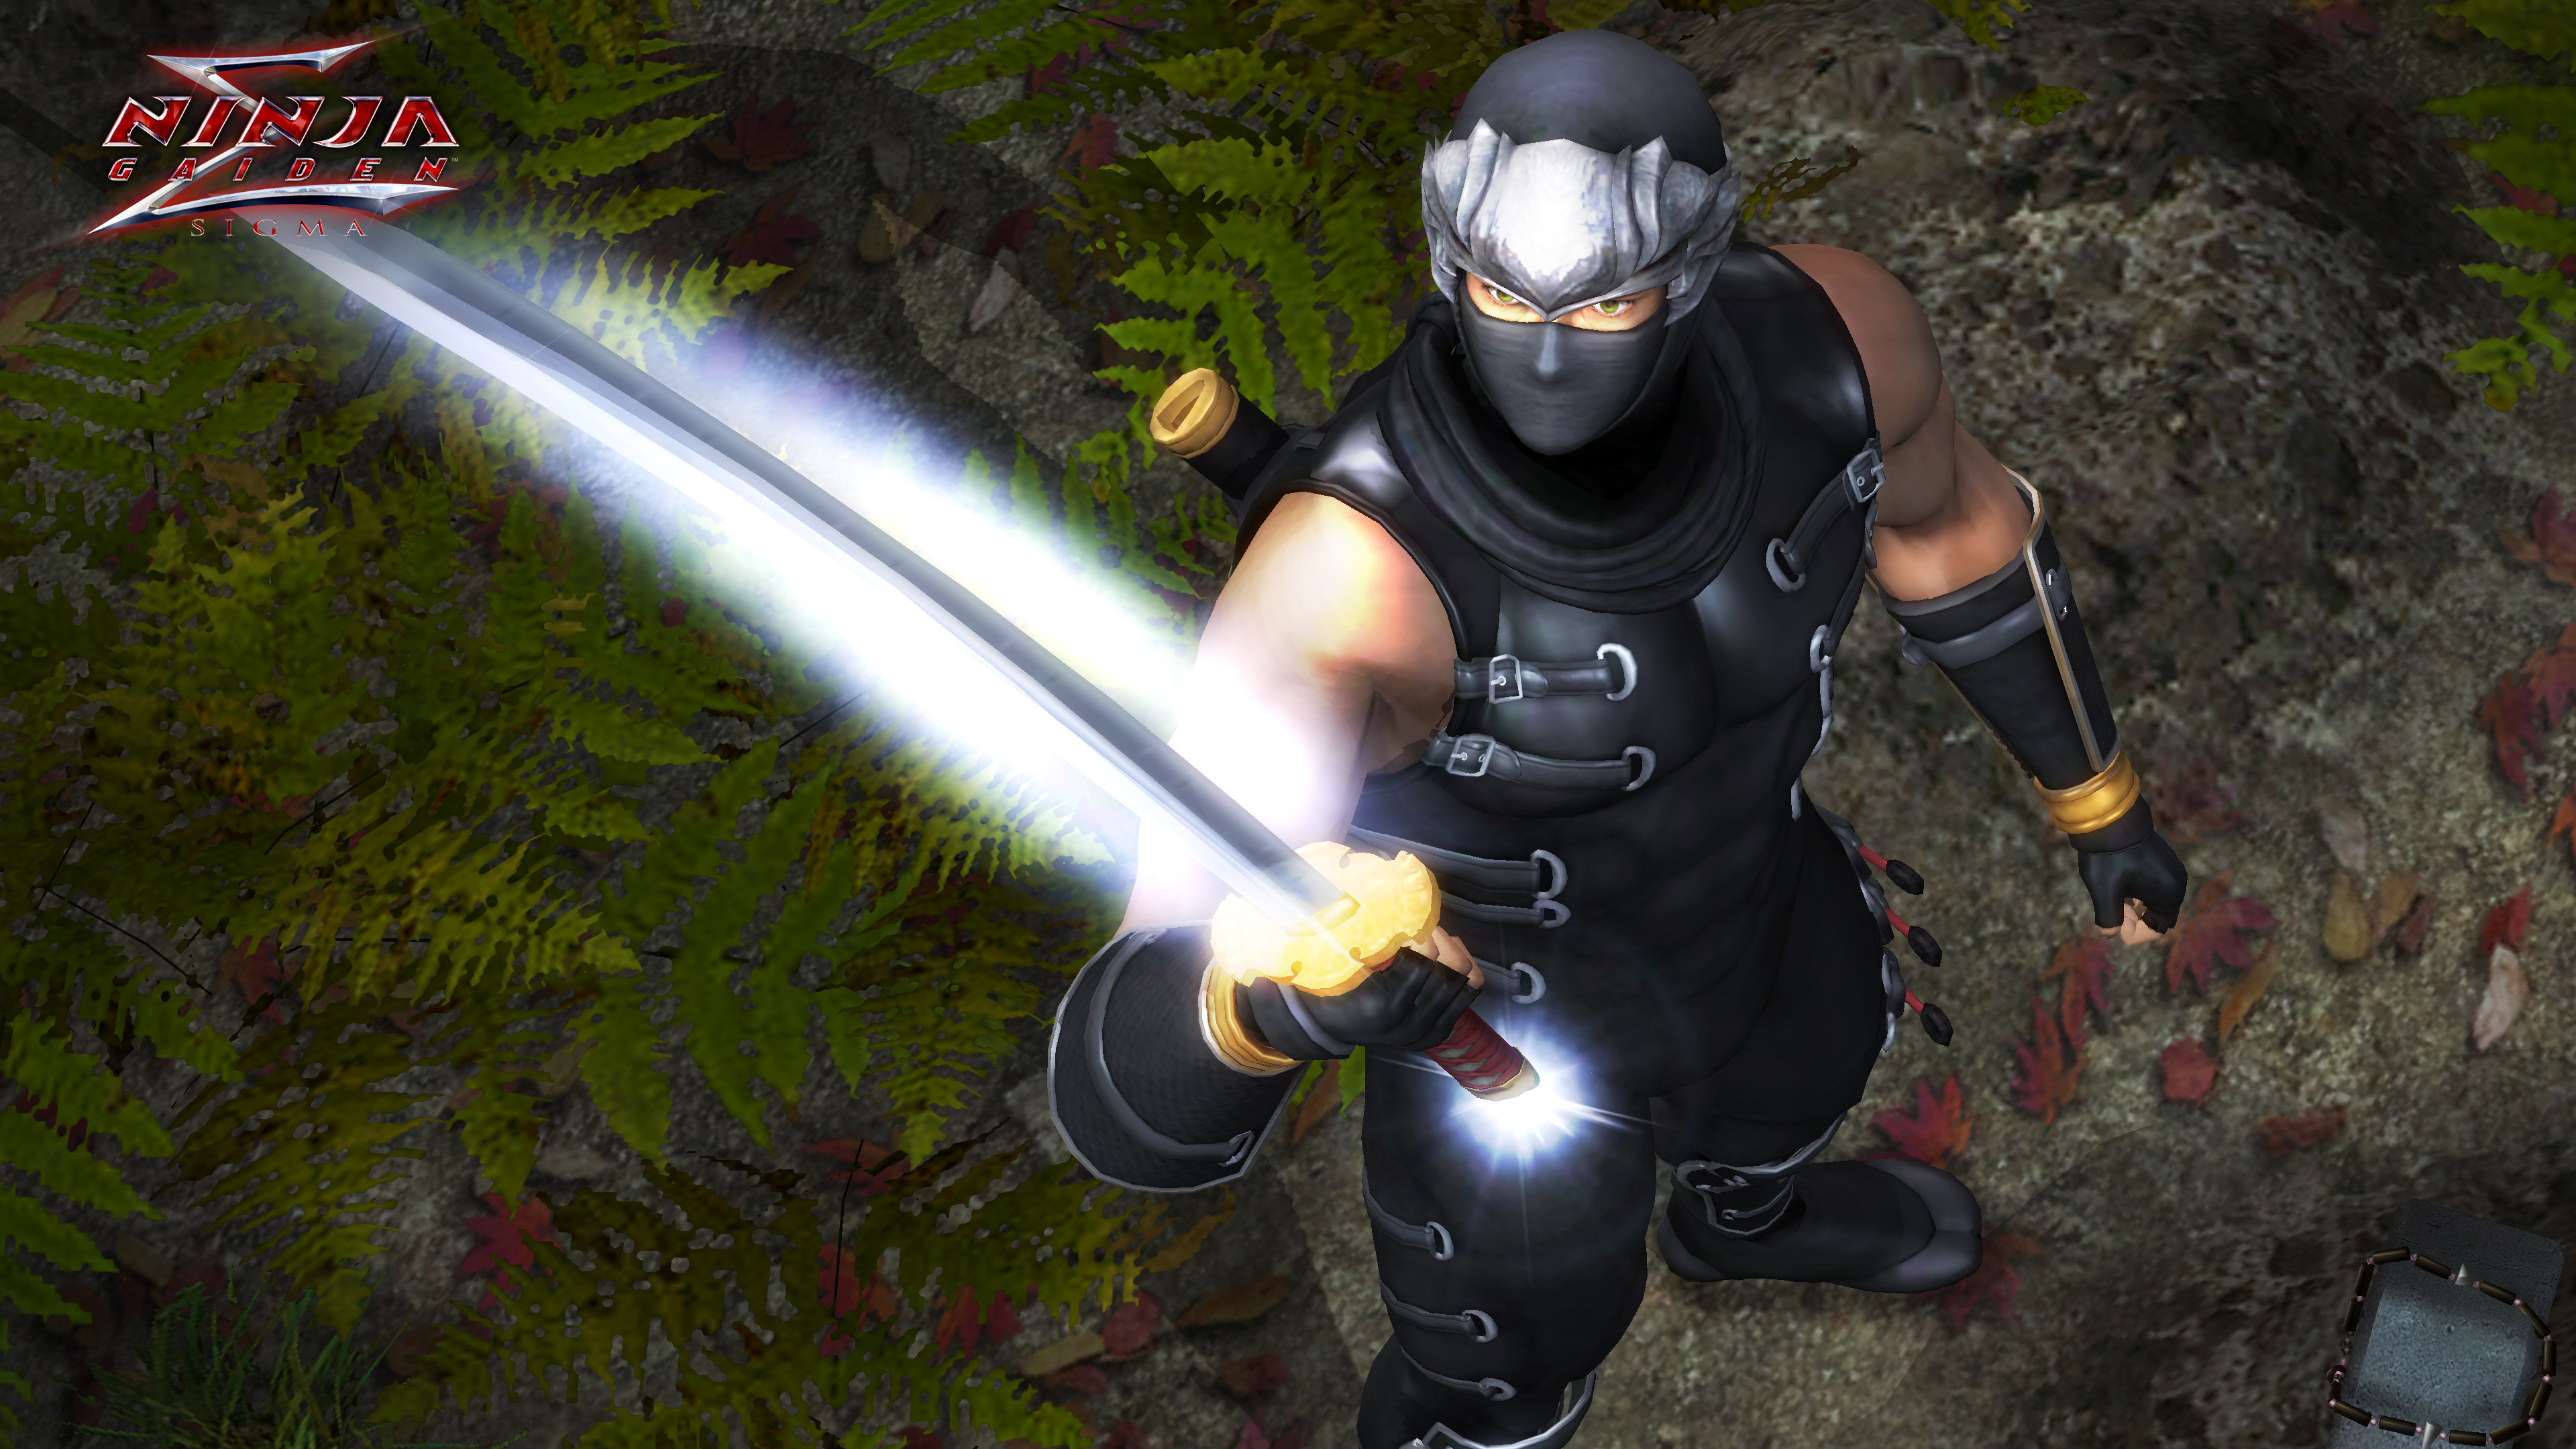 An Image from Ninja Gaiden: Master Collection